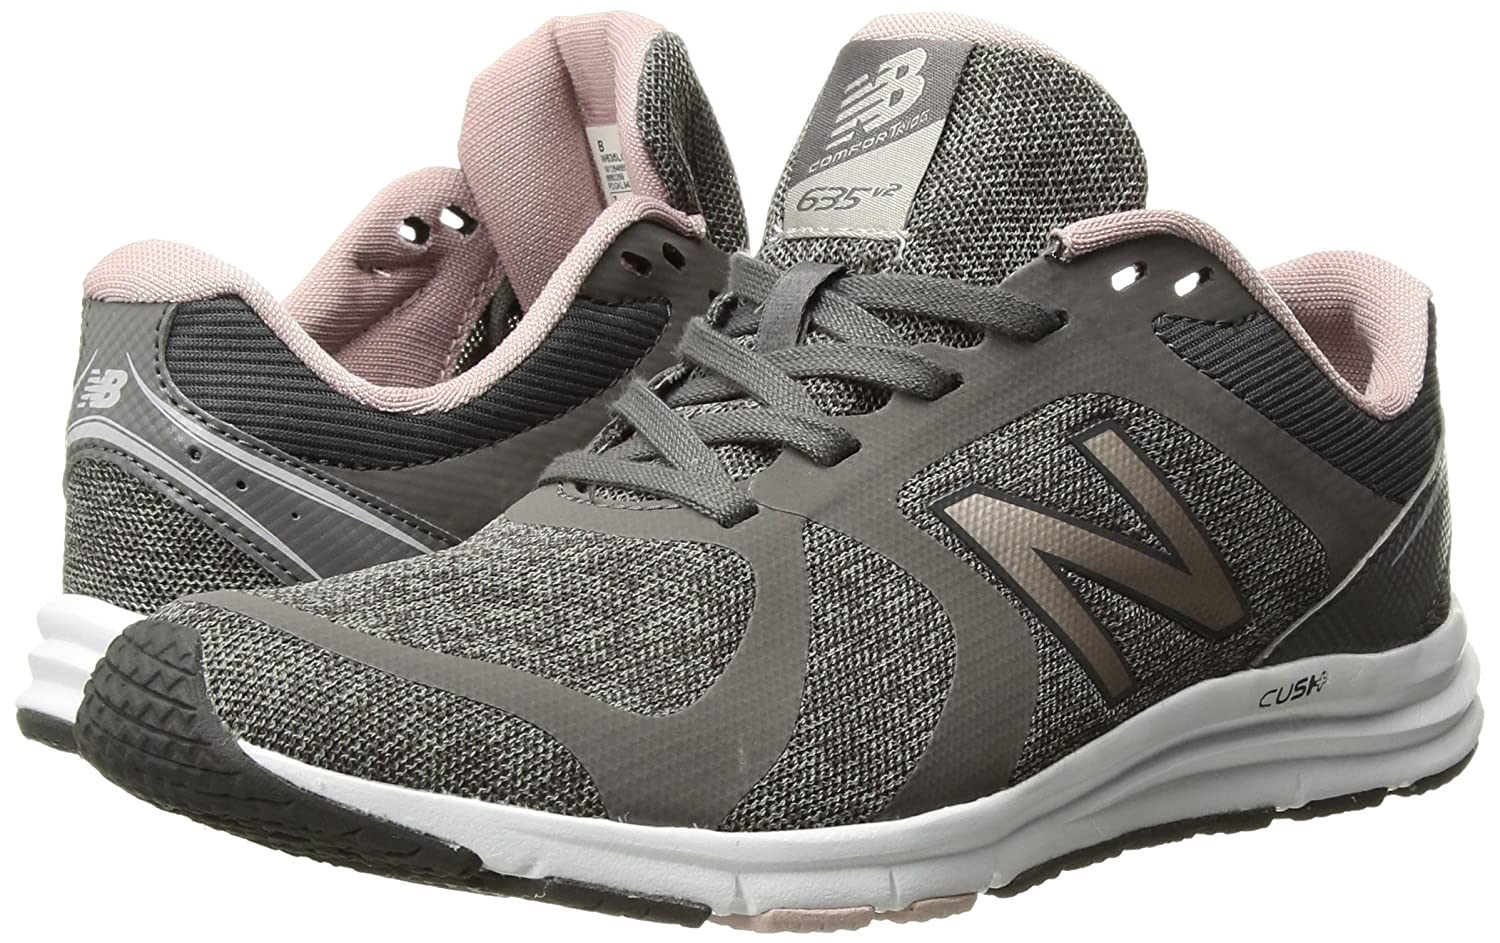 New Balance Women's 635v2 Cushioning US|Grey B01N7LX40A 9.5 D US|Grey Cushioning 2231e6